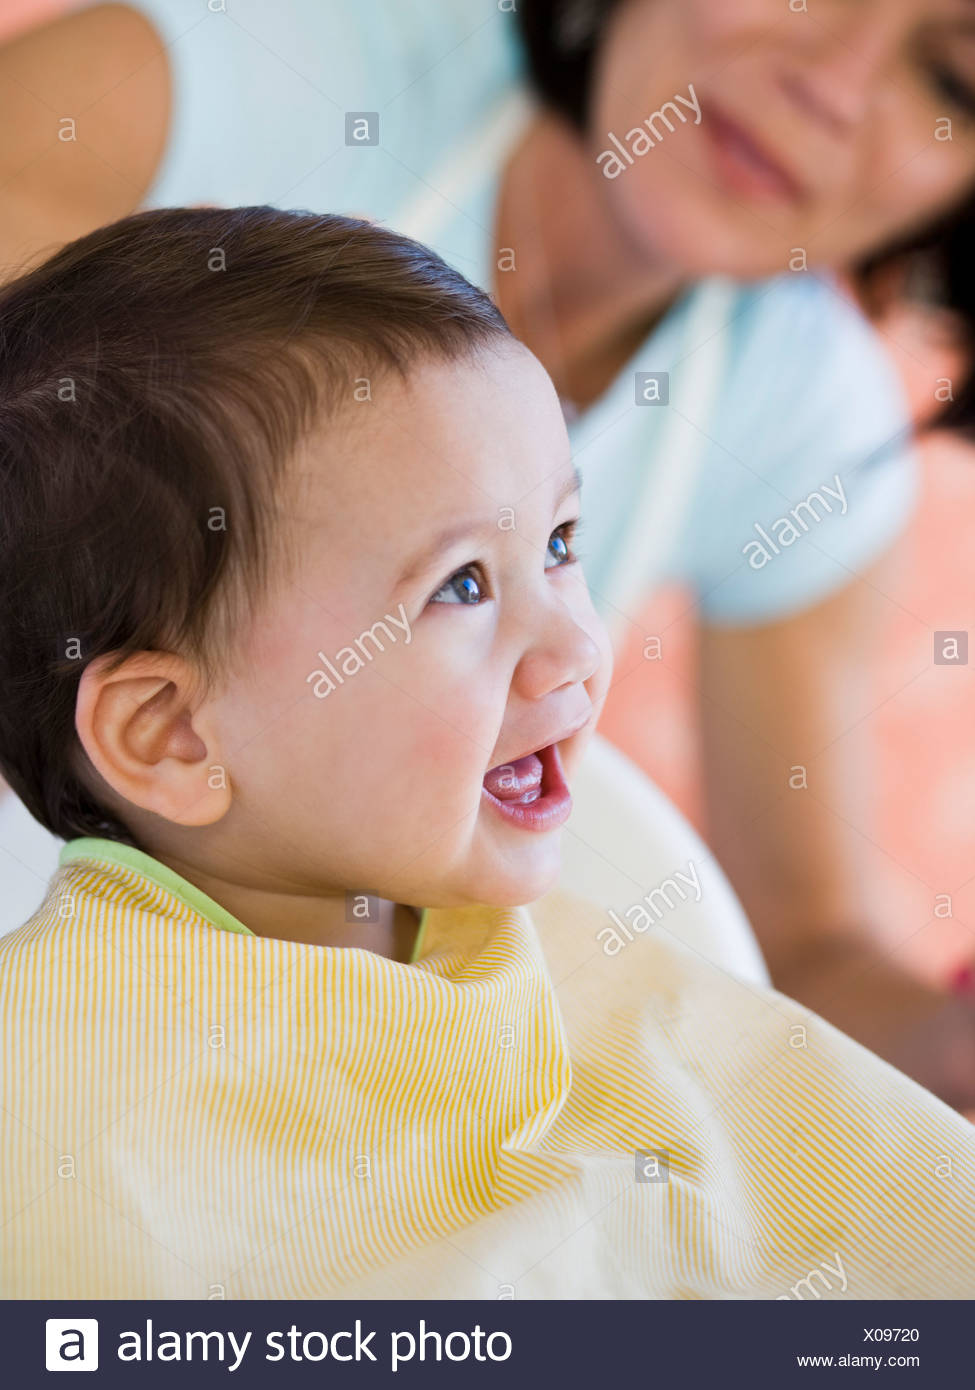 Baby Getting A Haircut Stock Photo 275569000 Alamy